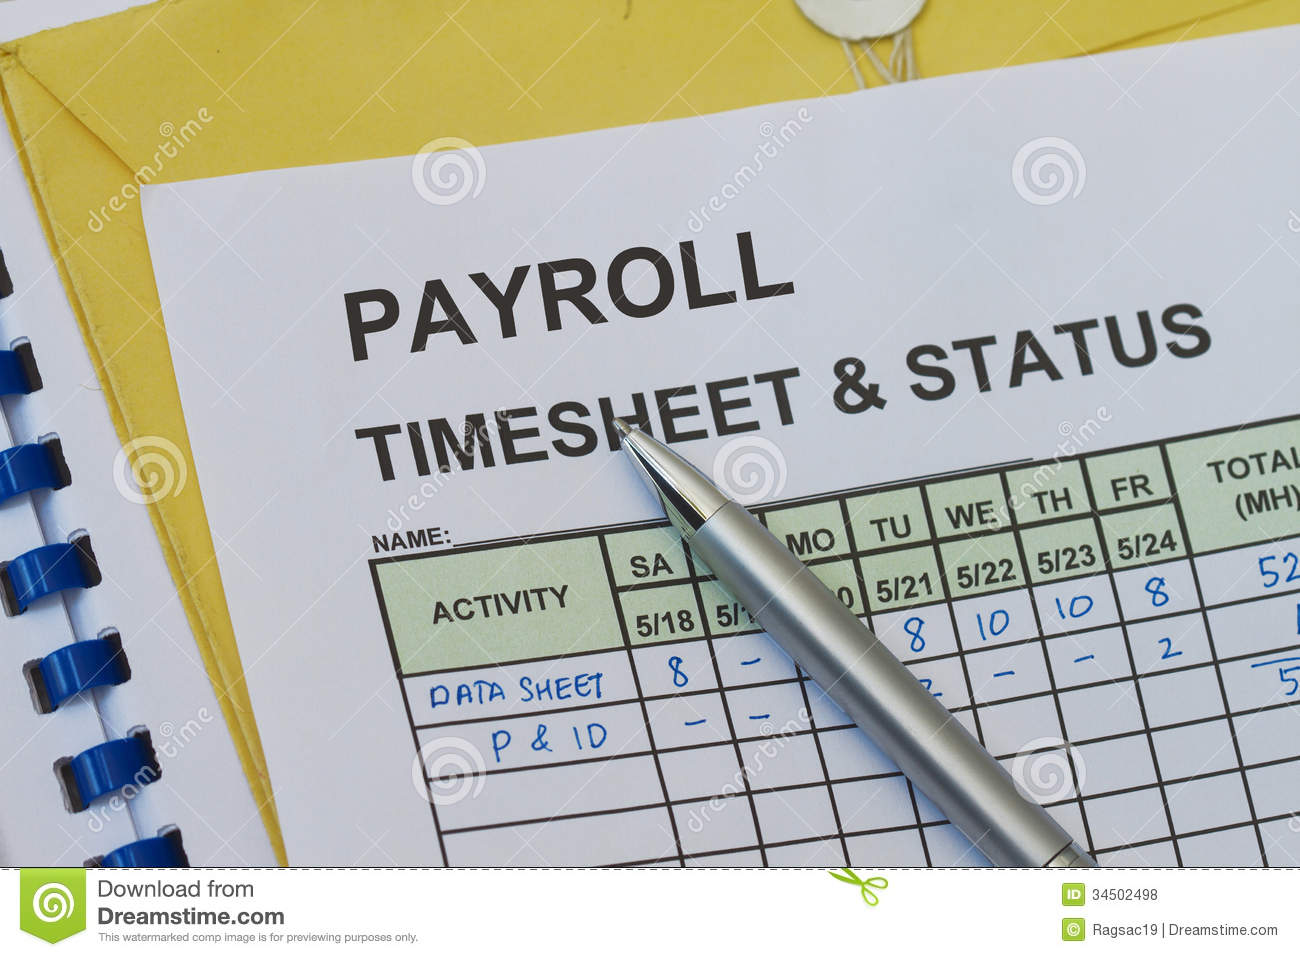 images for payroll timesheet